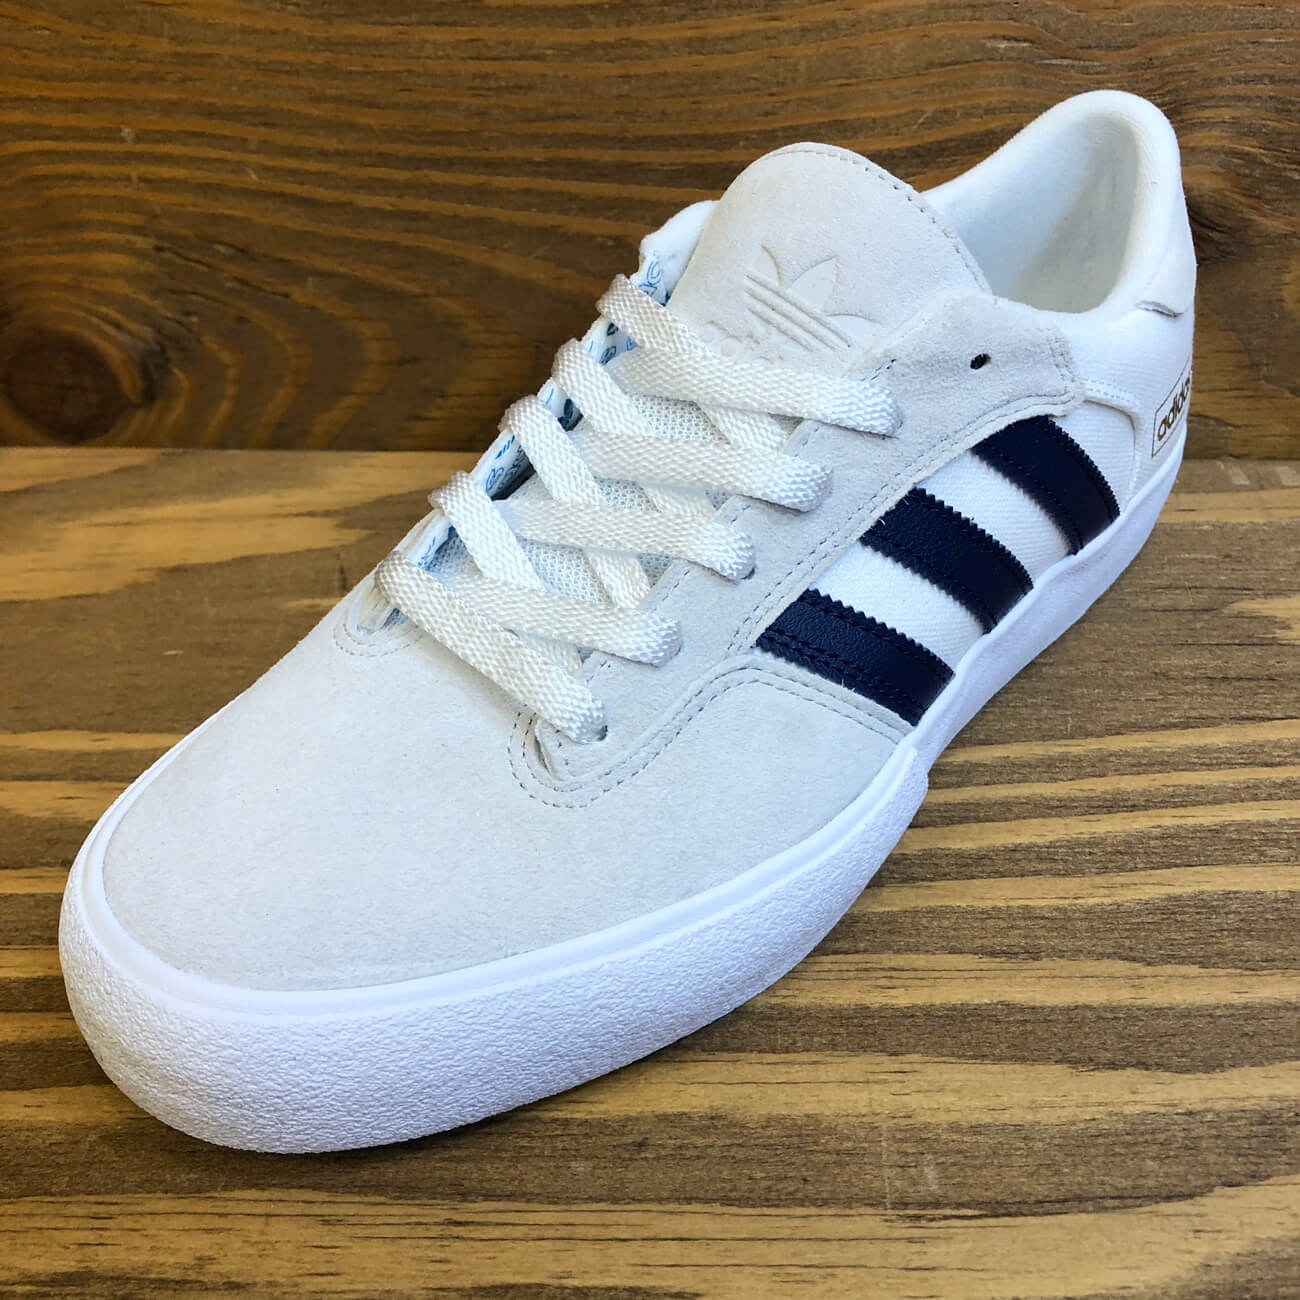 ADIDAS MATCHBREAK SUPER CRYSTAL WHITE/NAVY